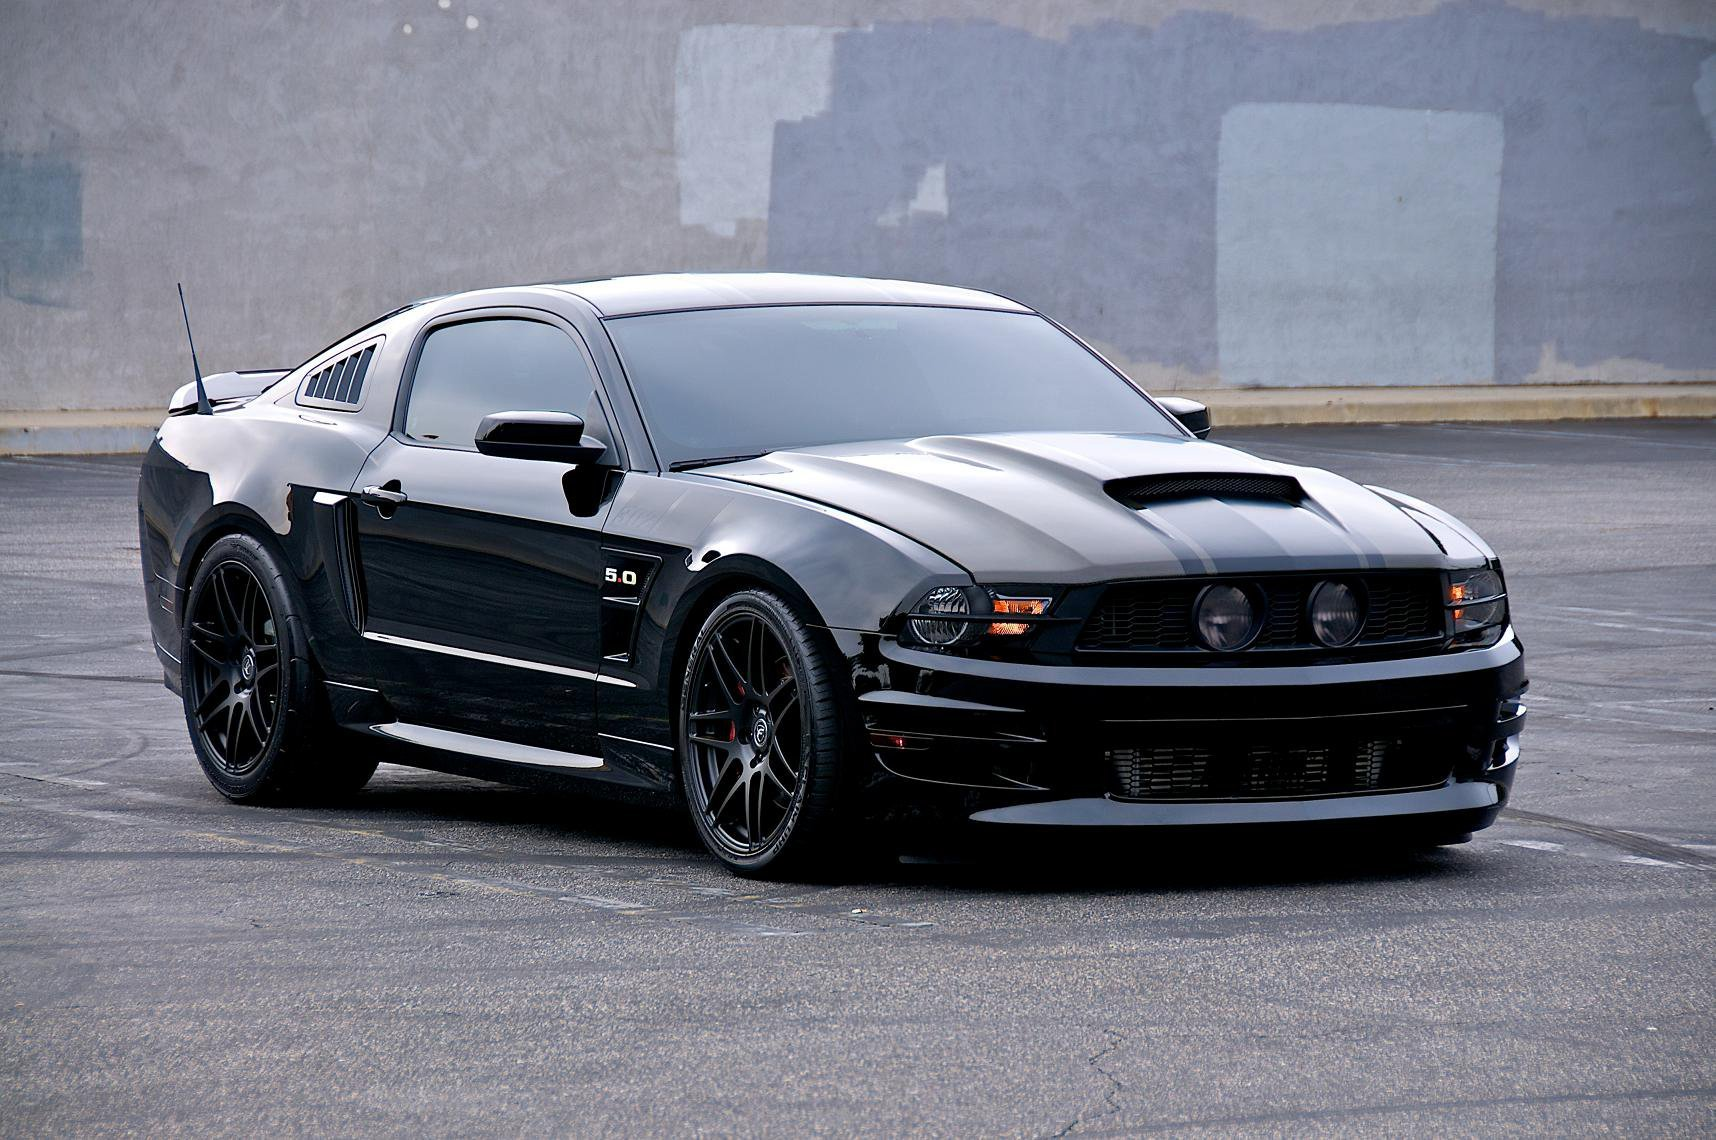 2011 mustang top 10 wheels ford mustang forum. Black Bedroom Furniture Sets. Home Design Ideas